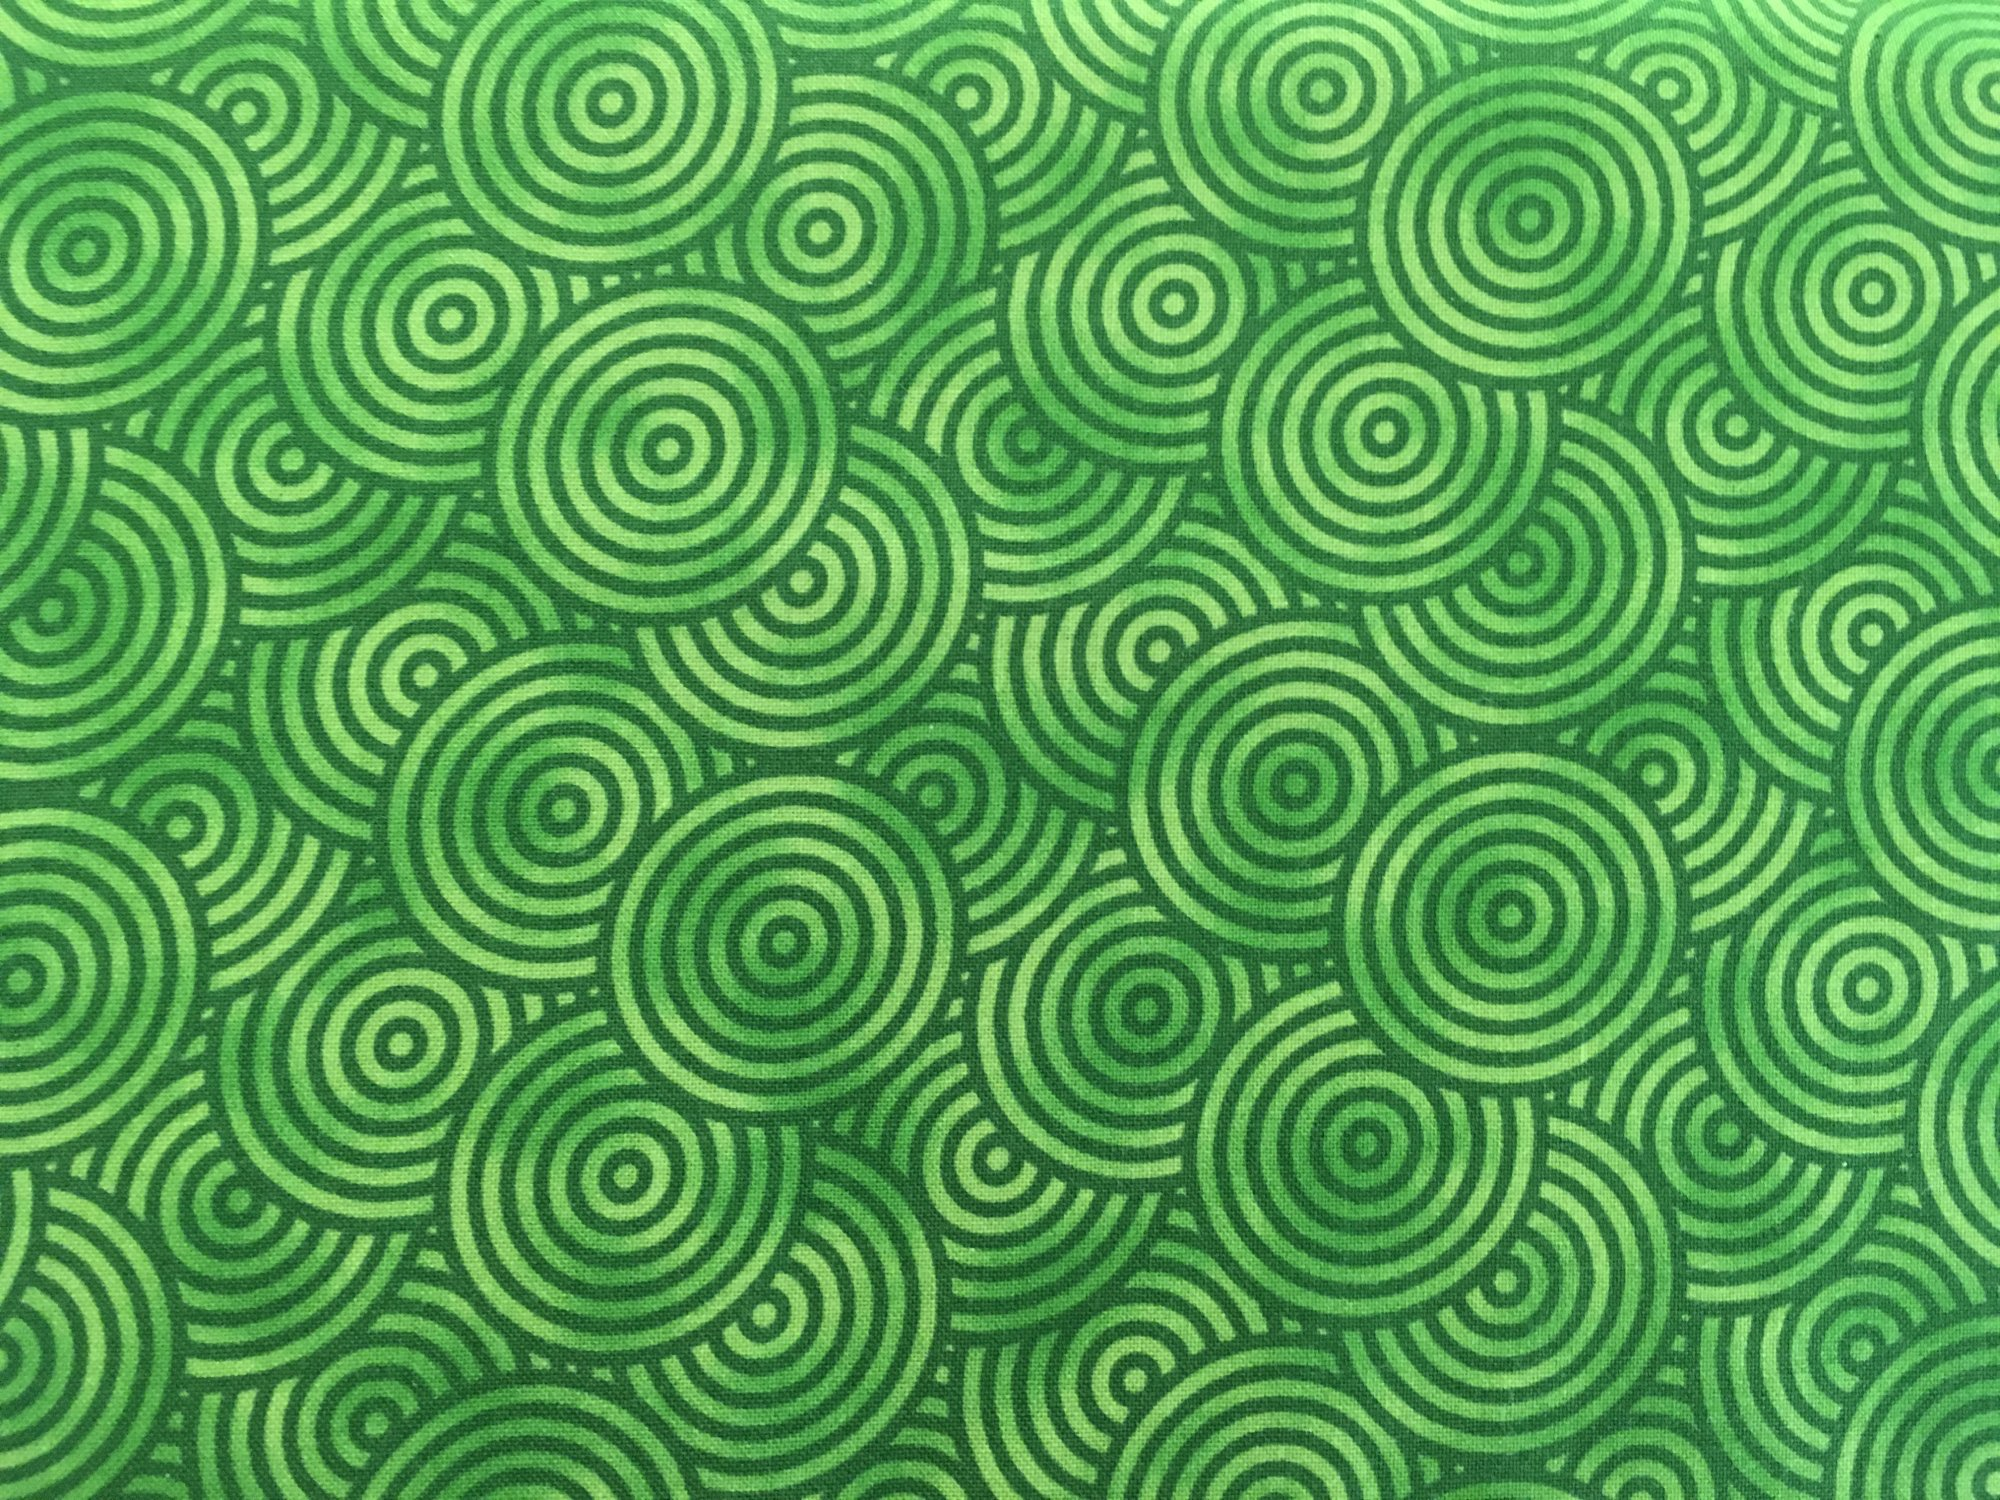 GEO FLOW GREEN SWIRLS BTR704366 Blank Quilting